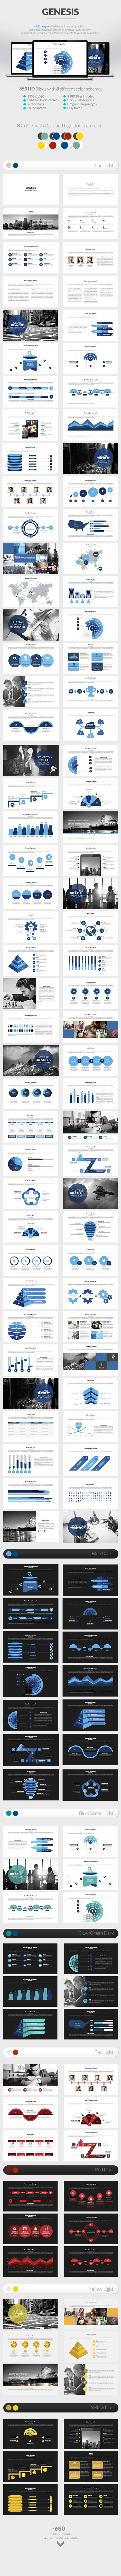 Genesis | Powerpoint Presentation Template #powerpoint #powerpointtemplate #presentation Download: http://graphicriver.net/item/genesis-powerpoint-presentation/8851694?ref=ksioks